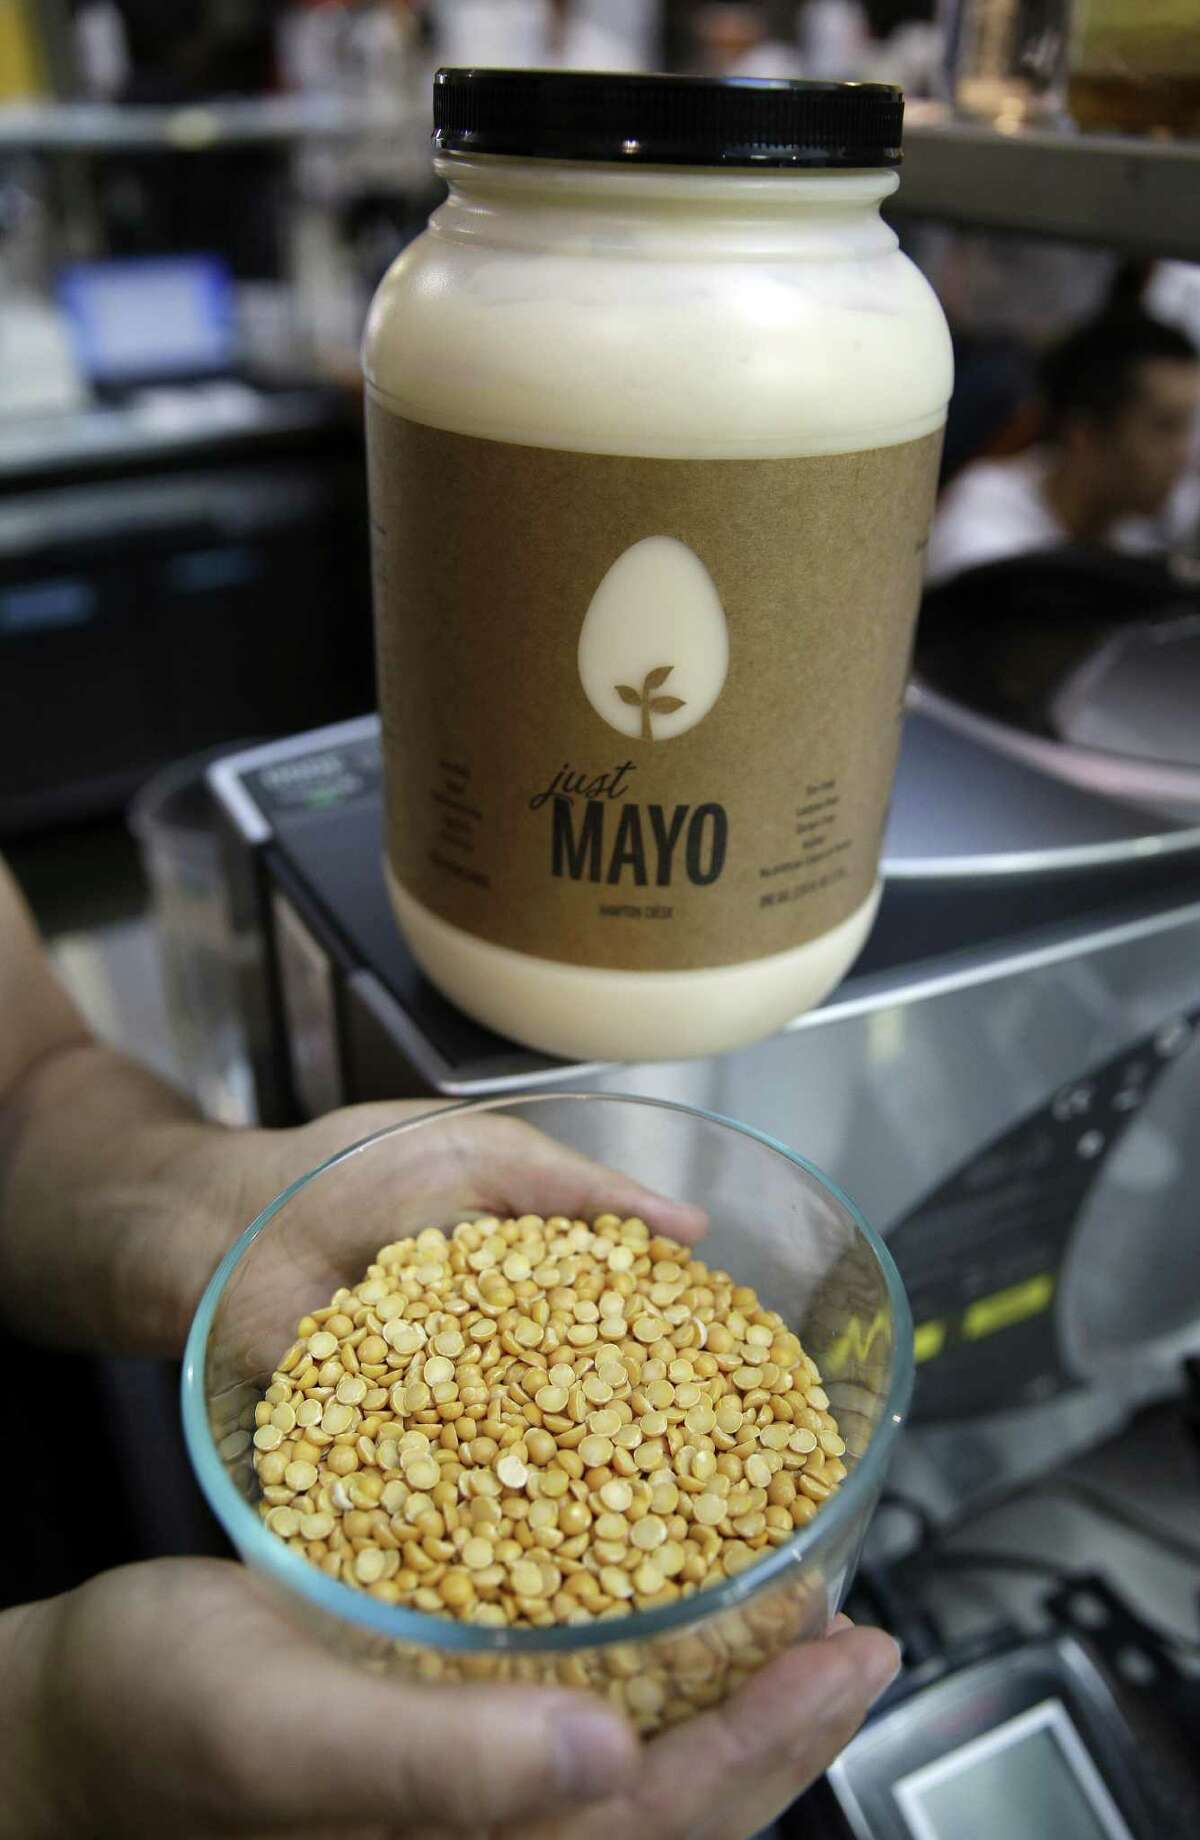 """FILE - In this Dec. 3, 2013 file photo, Hampton Creek CEO and Founder Josh Tetrick poses with a bowl of a species of yellow pea used to make Just Mayo, a plant-based mayonnaise, at Hampton Creek Foods in San Francisco. Hellmann's mayonnaise owner Unilever on Oct. 31, 2014 filed a lawsuit against Hampton Creek for labeling its egg-free product """"Just Mayo,"""" saying that federal regulators and dictionaries define mayonnaise as a spread that contains eggs. (AP Photo/Eric Risberg, File) ORG XMIT: MER2014111115223909"""